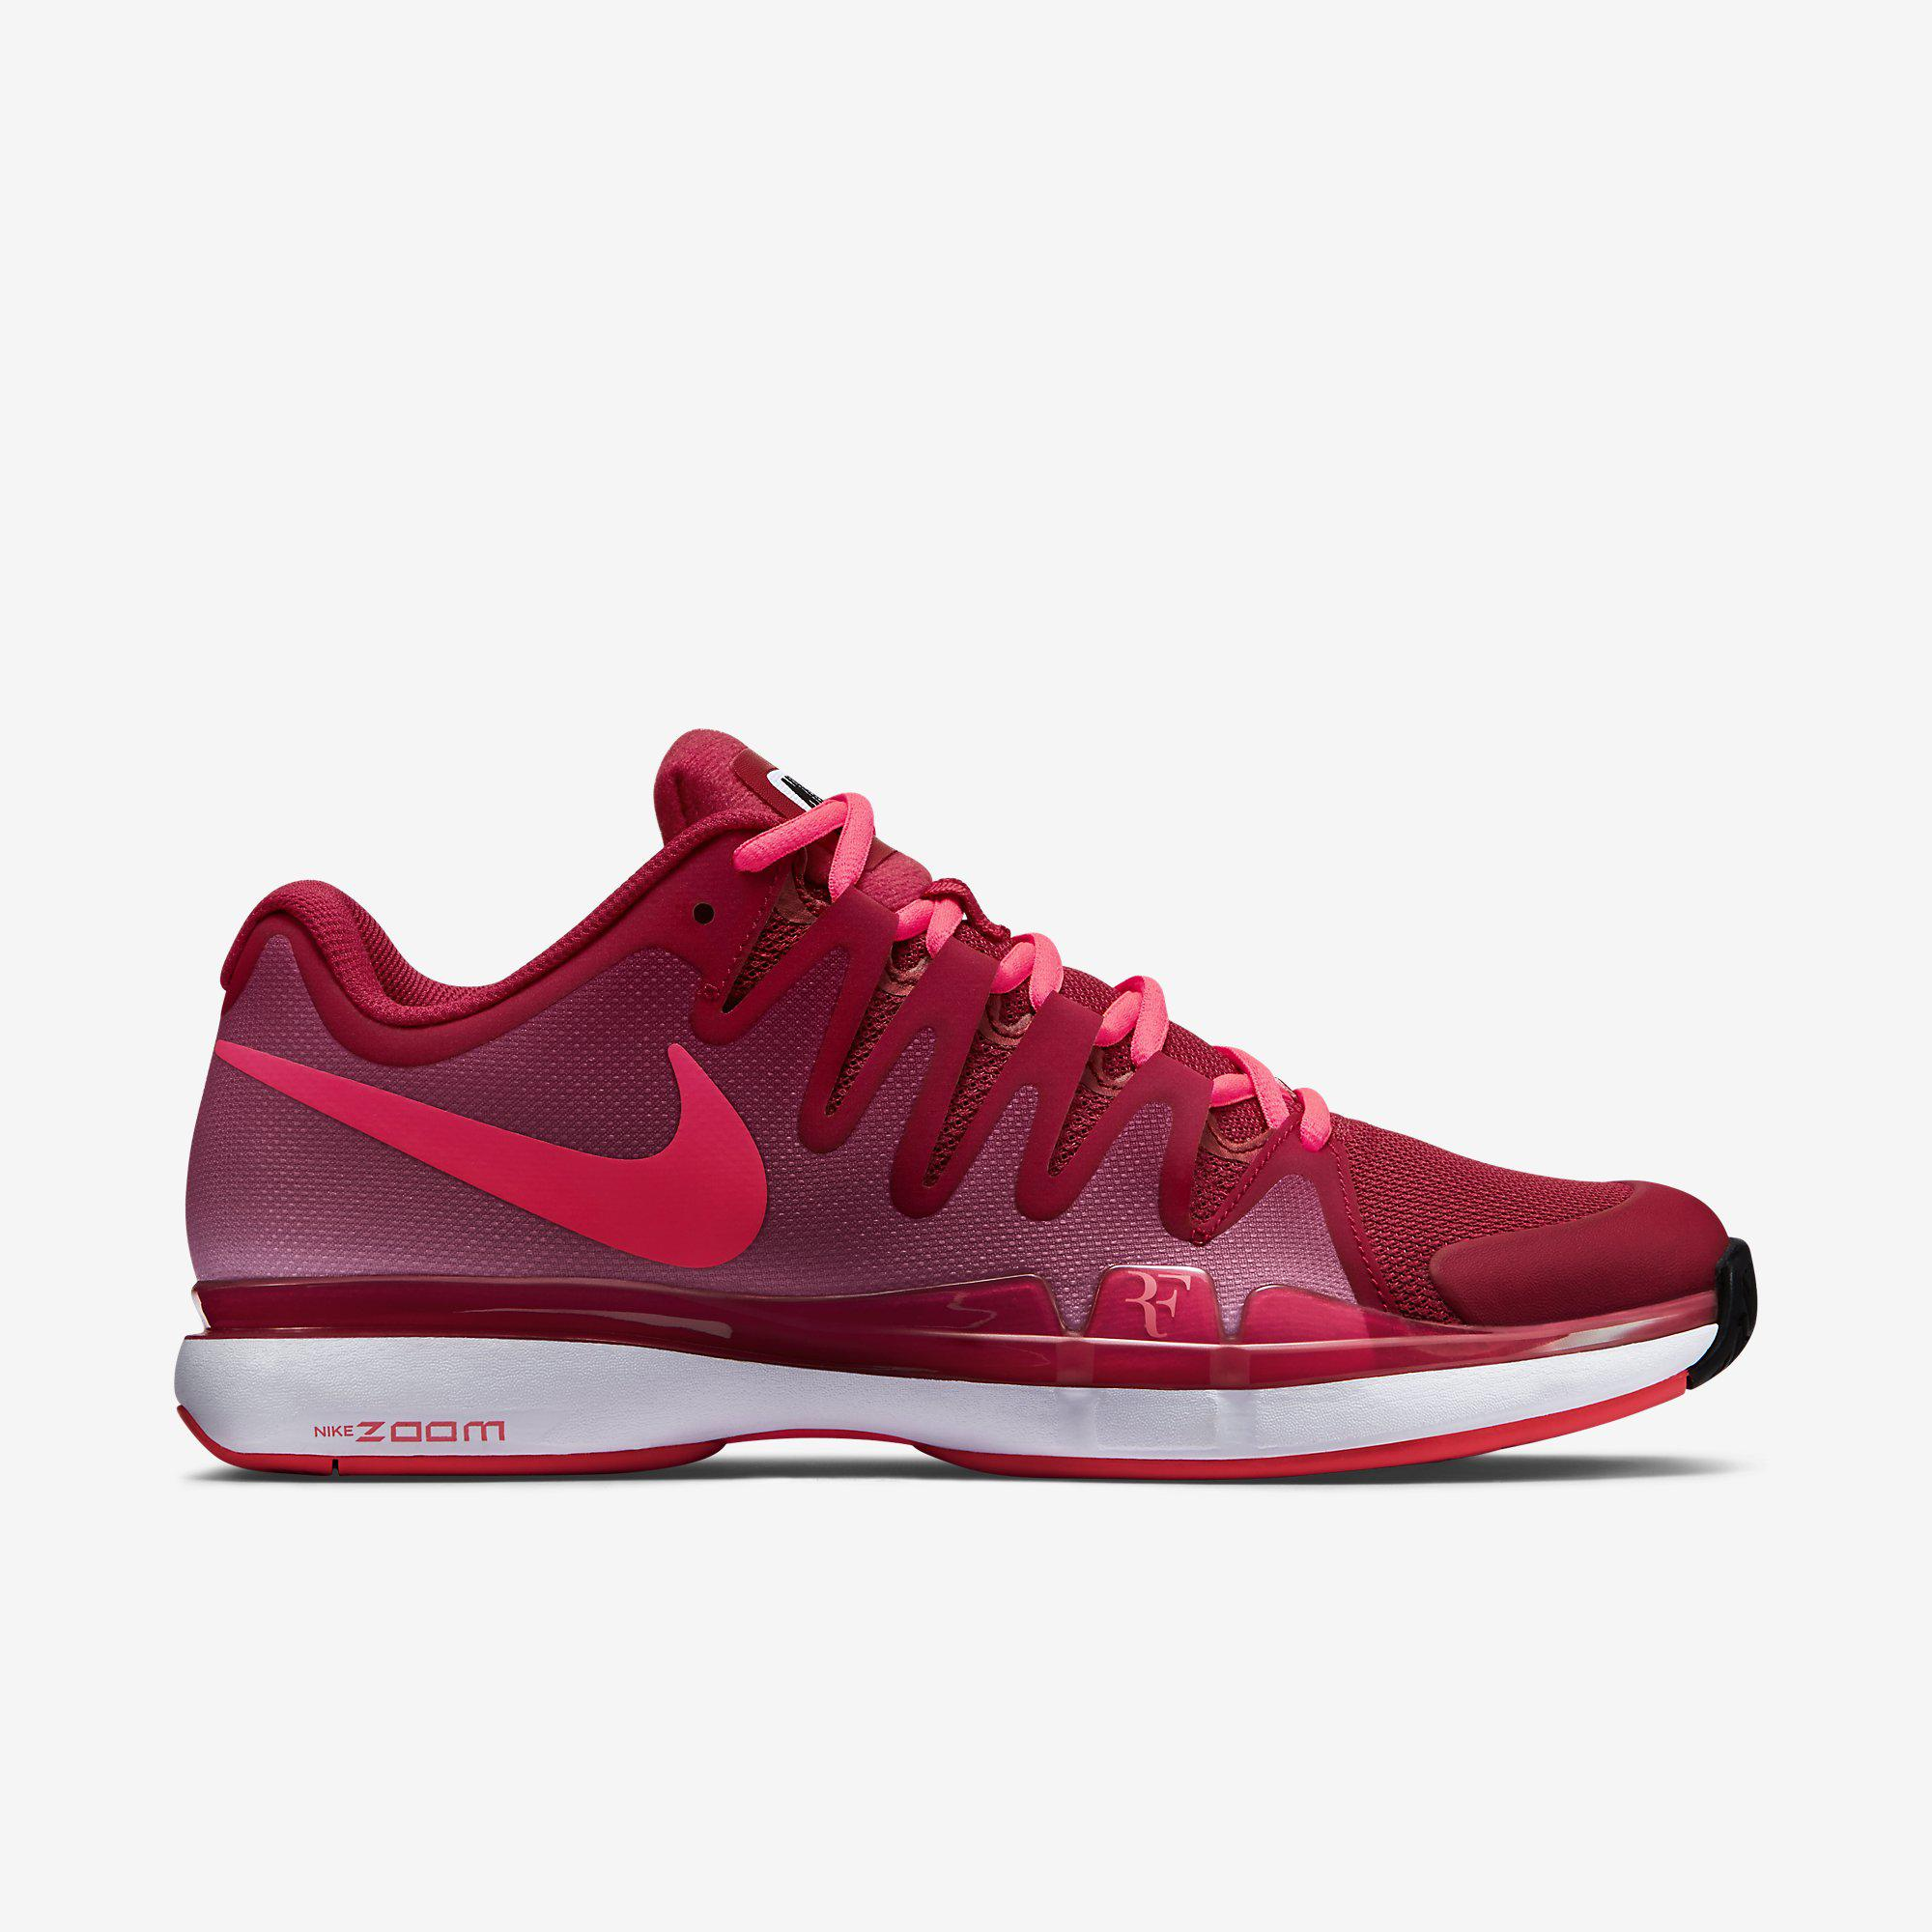 Nike Vapor Tennis Shoes